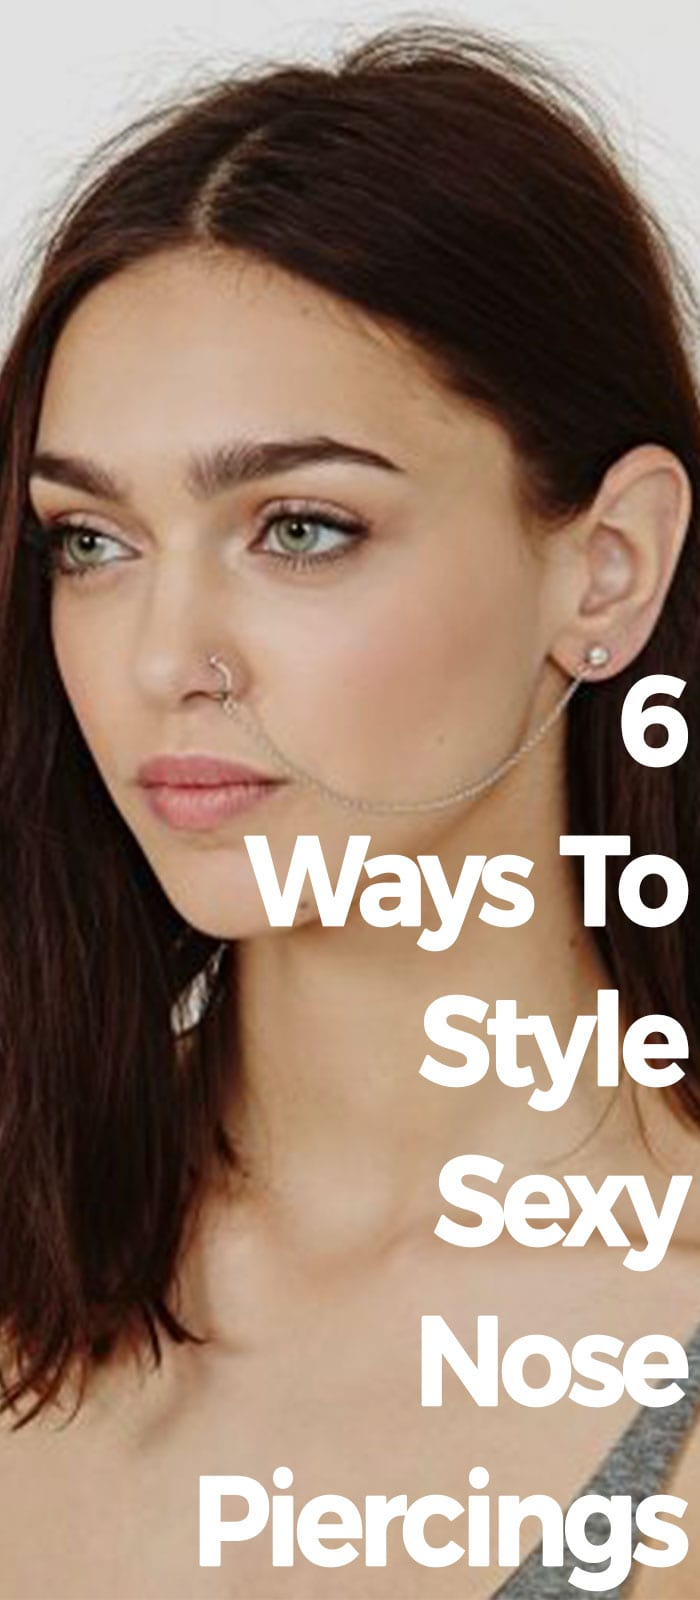 6 Ways To Style Sexy Nose Piercings!